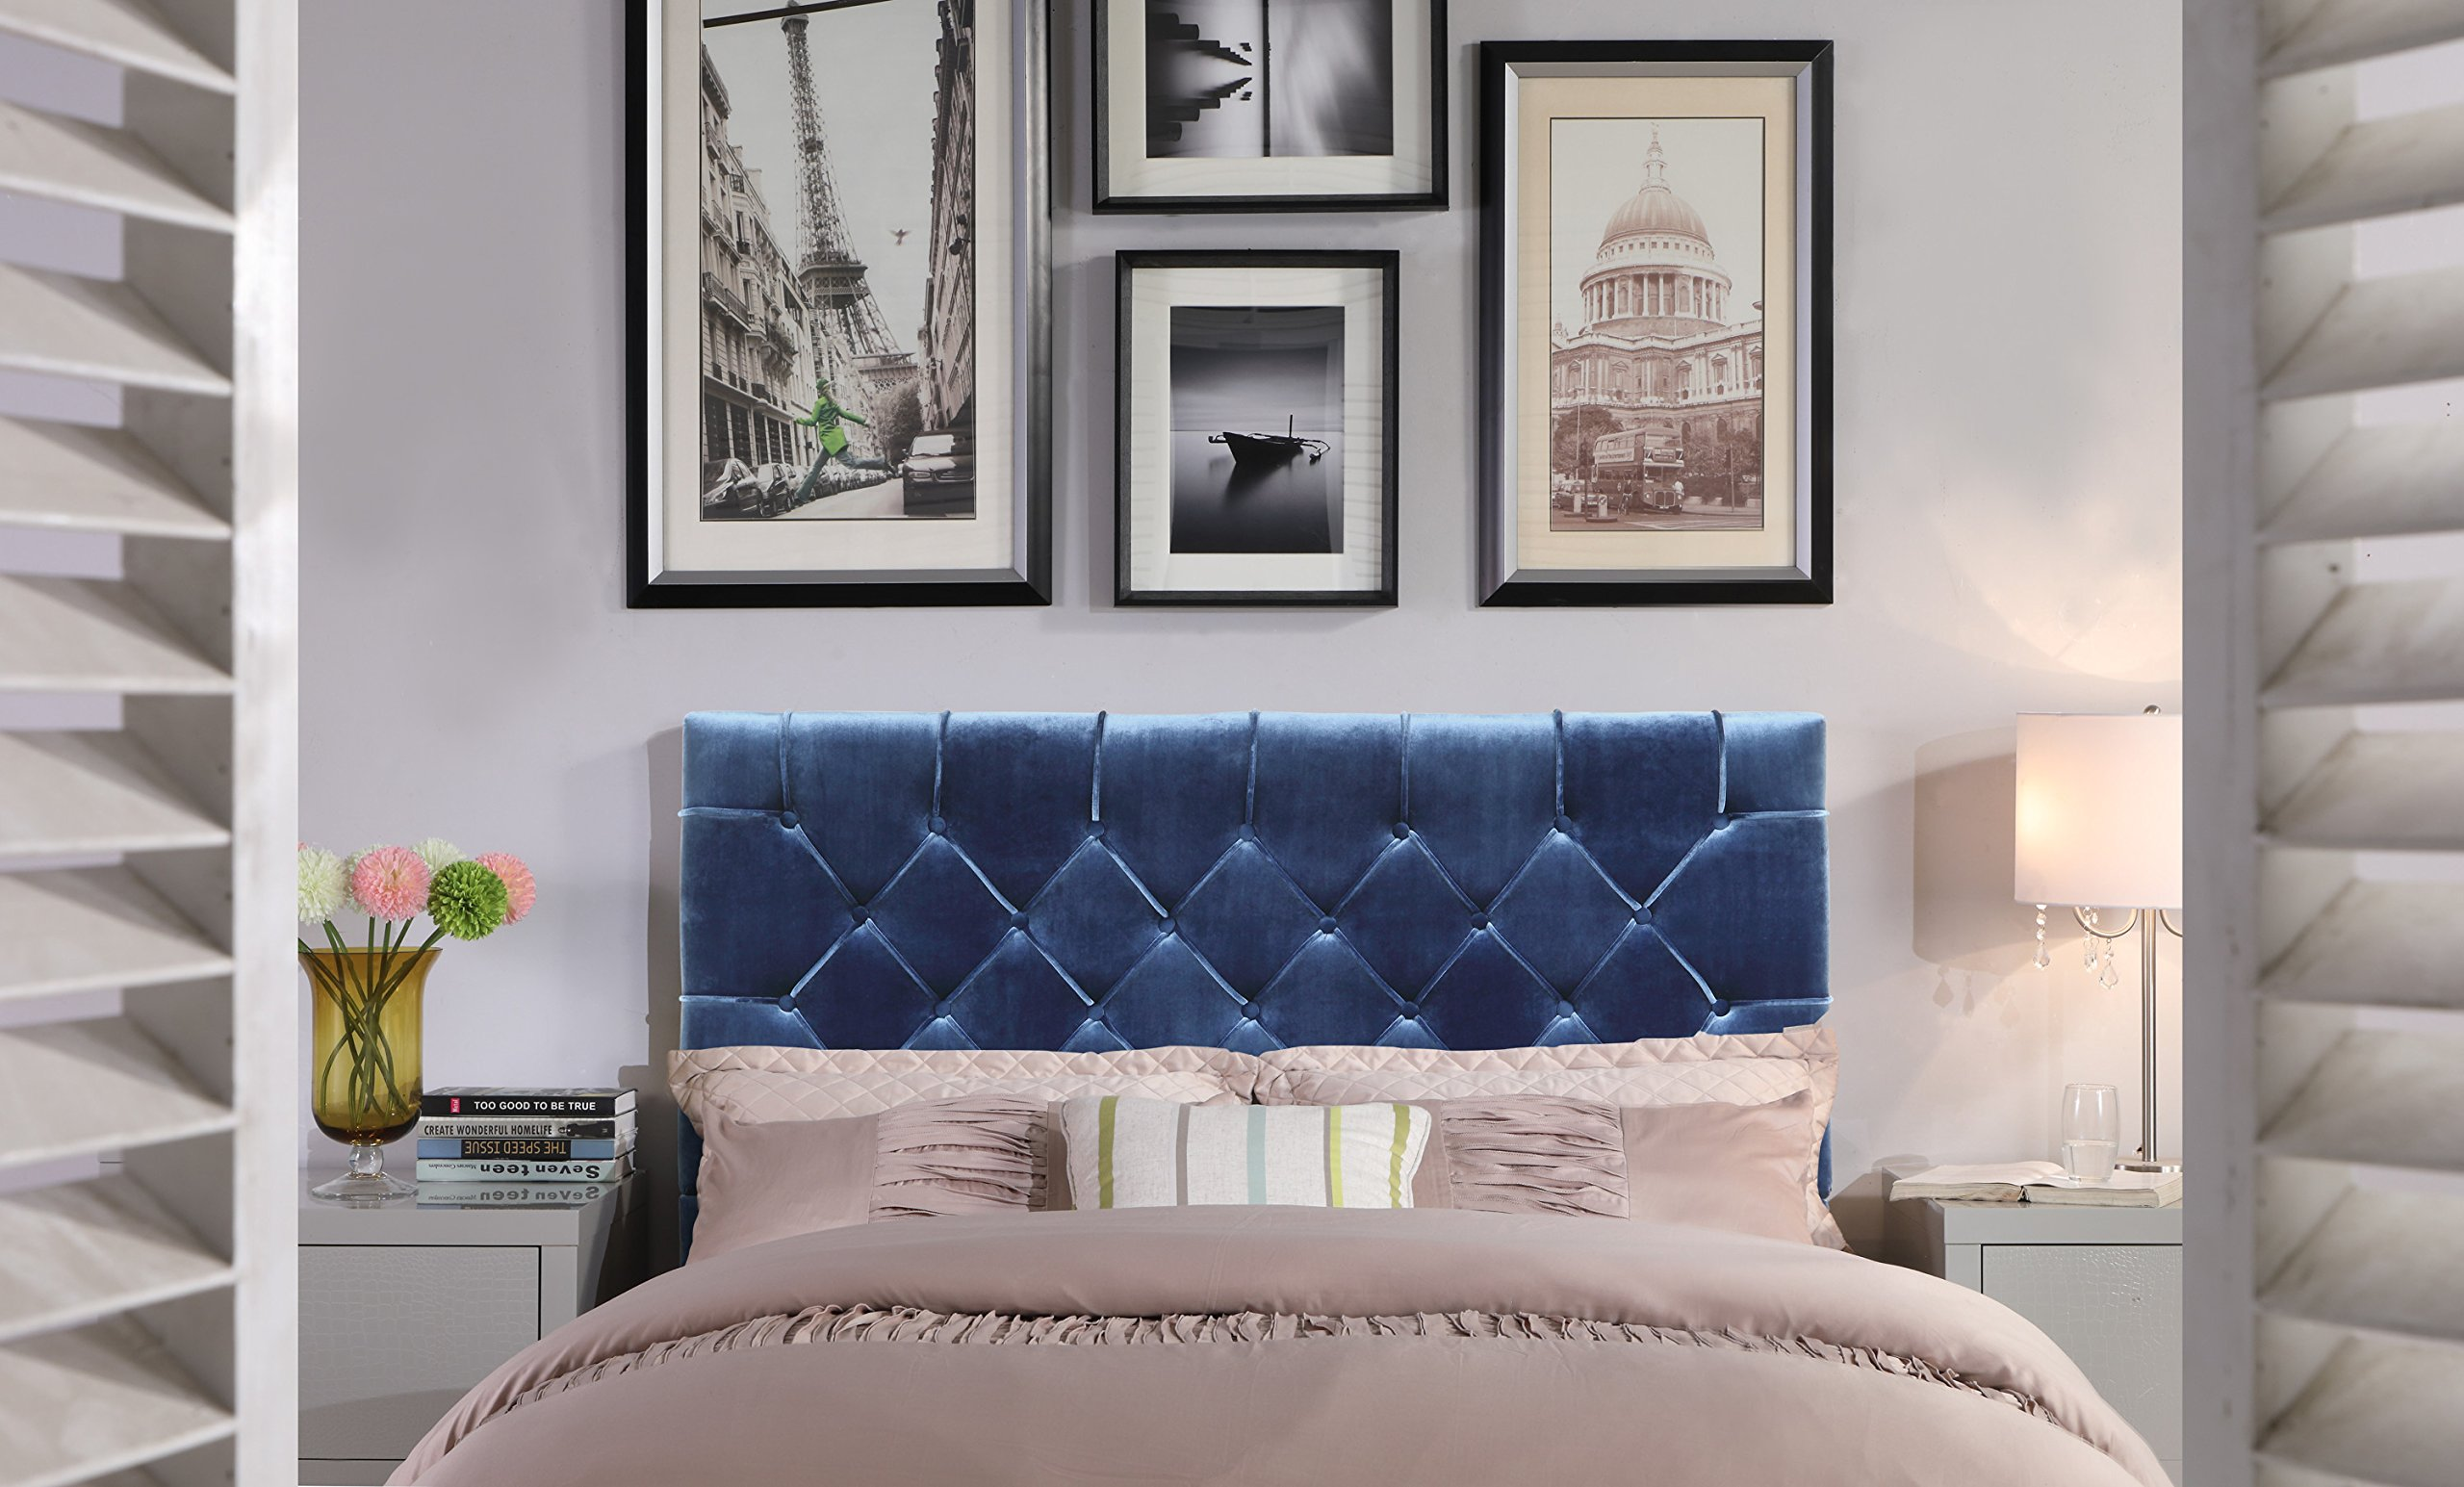 Iconic Home FHB9027-AN Rivka Headboard Velvet Upholstered Diamond Button Tufted Modern Transitional Full/, Queen, Navy by Iconic Home